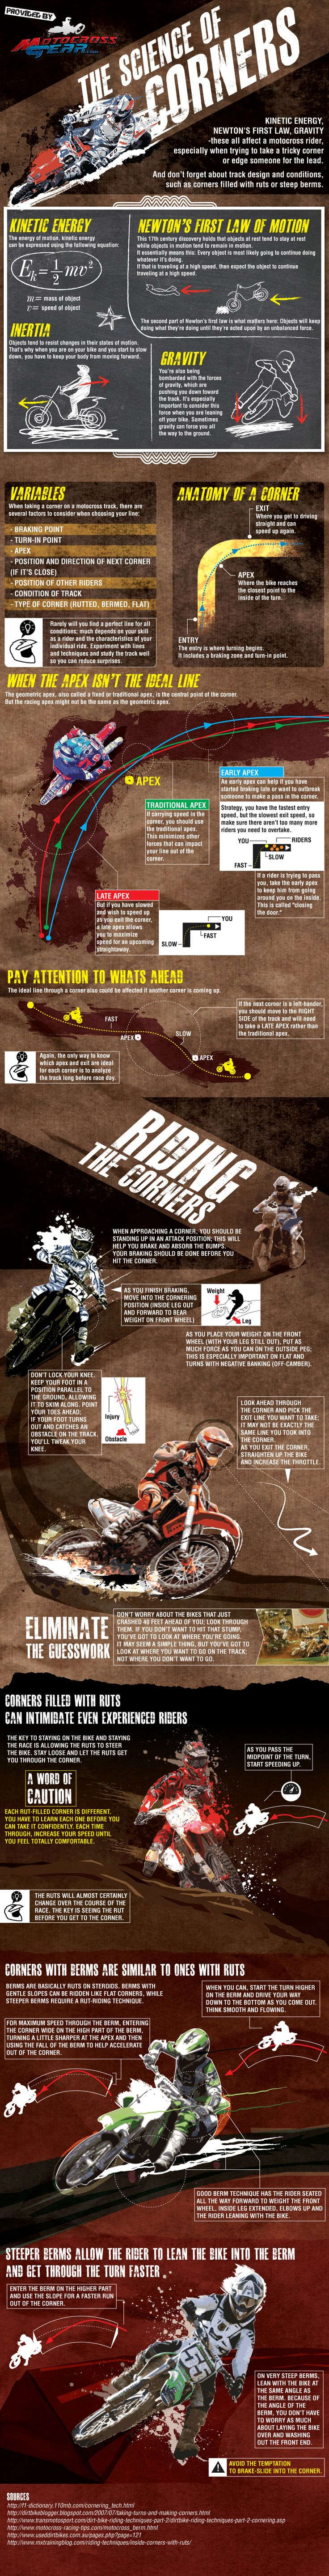 How to corner on a motorcycle: a cool infographic for you to share.